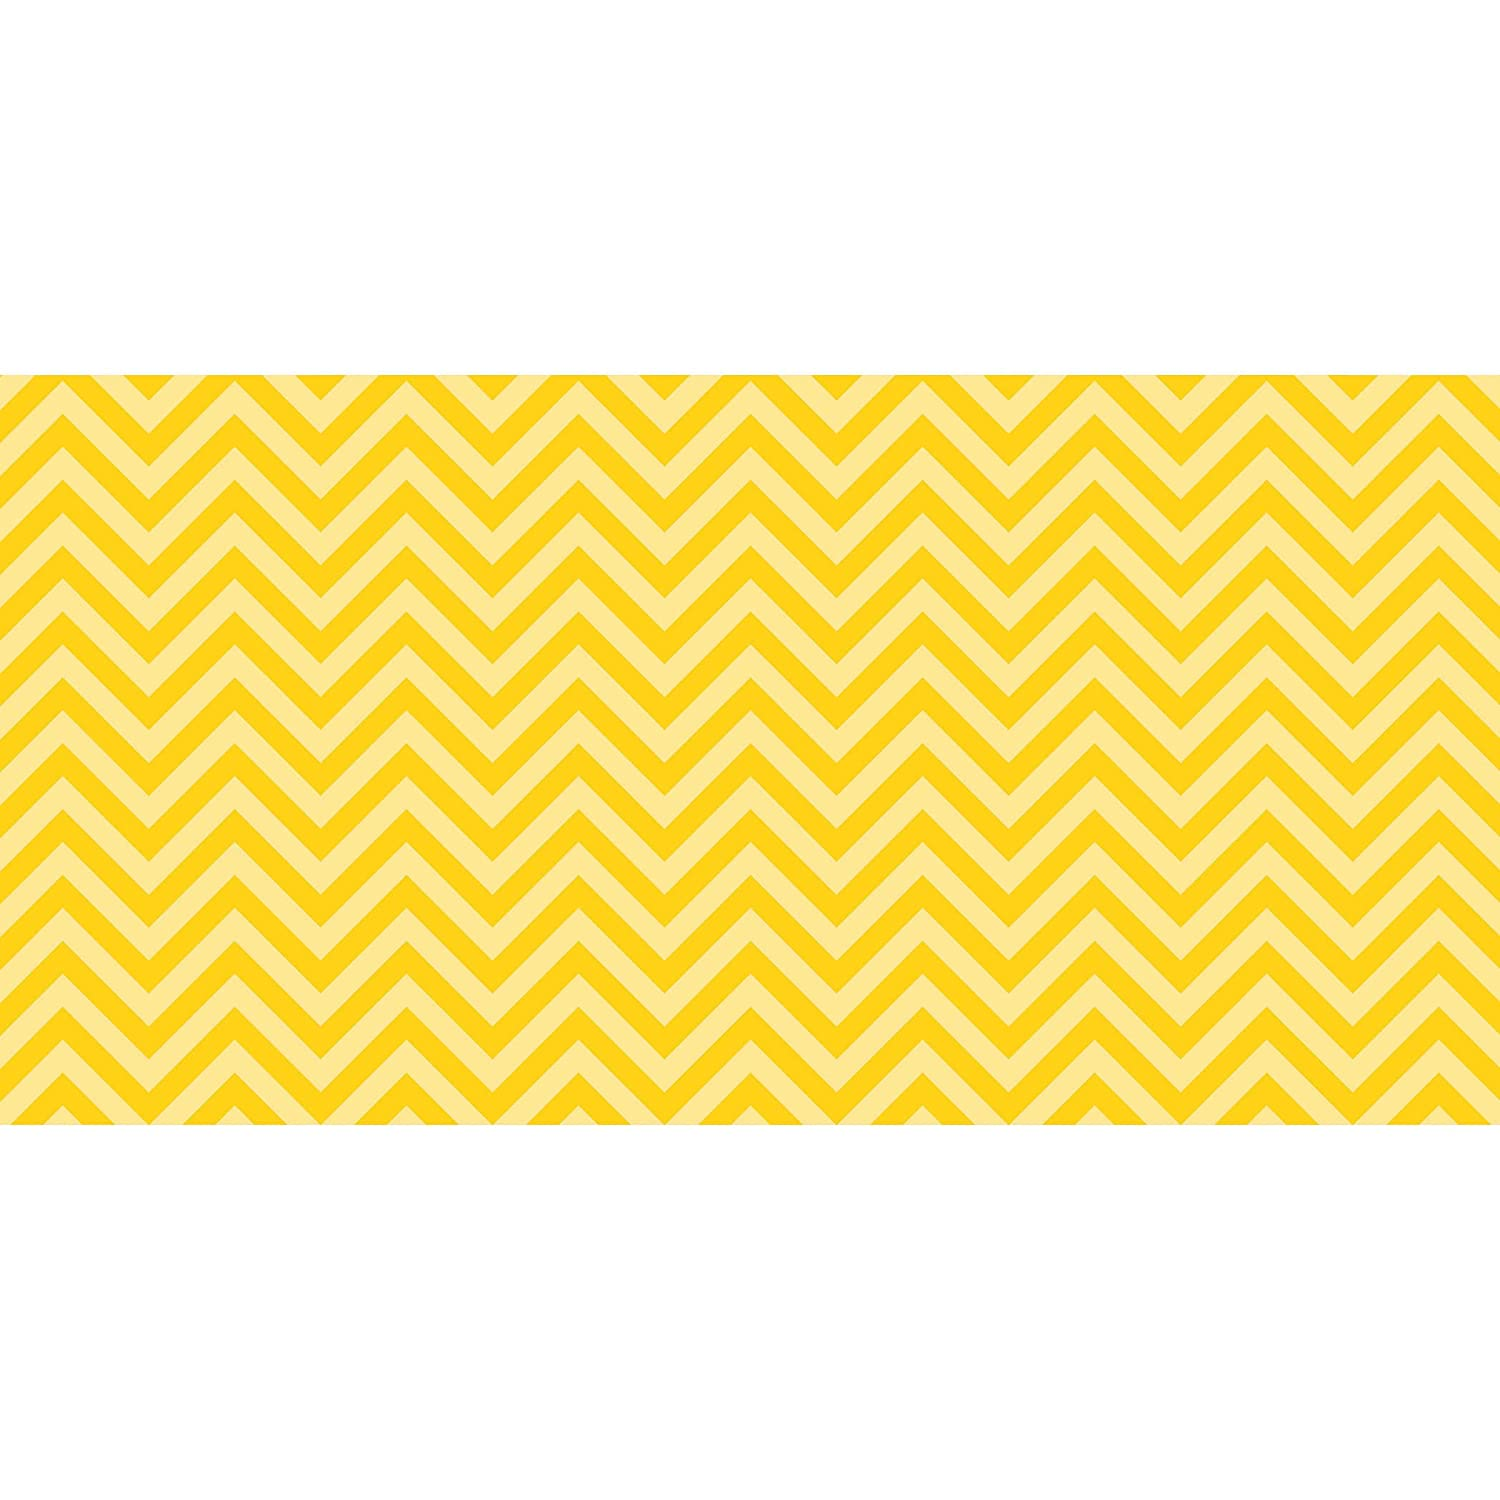 Pacon Fadeless Designs Bulletin Board Art Paper, 4-Feet by 50-Feet, Chic Chevron Yellow (55805) by Pacon B00LMVIT3G Chic Chevron Yellow Chic Chevron Yellow